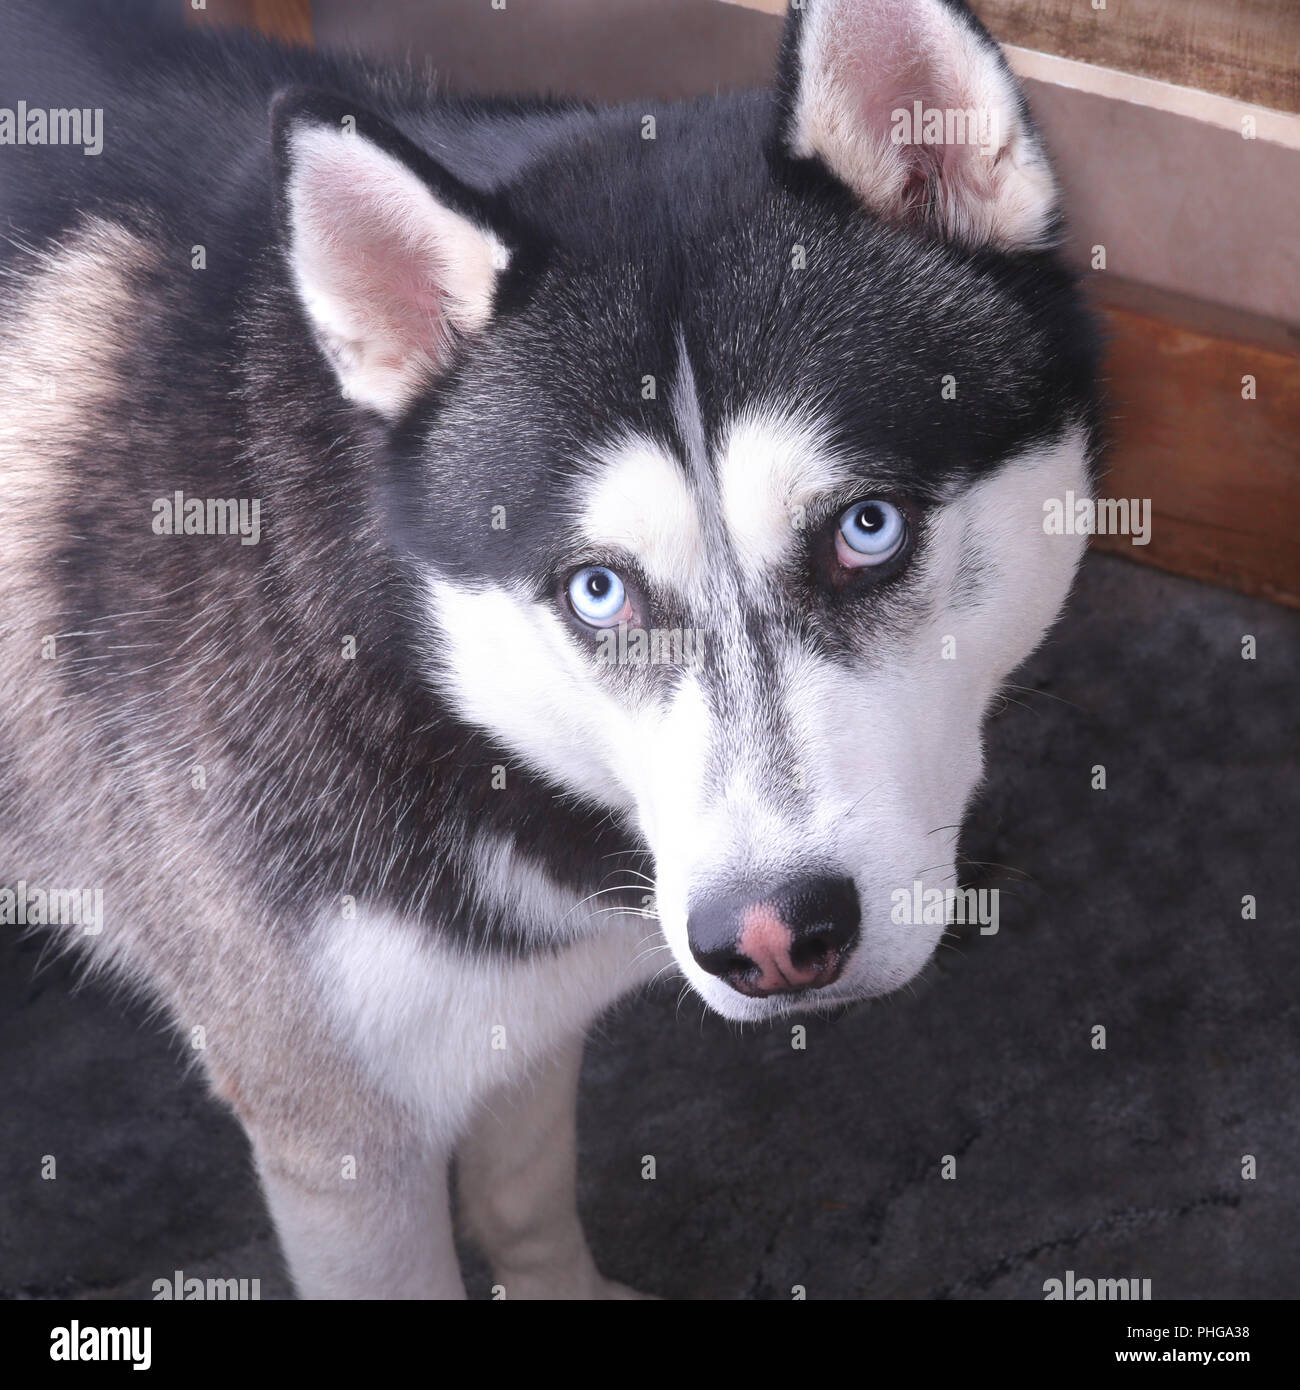 Siberian Husky Dog With Blue Eye Looks To Right Husky Dog Has Black